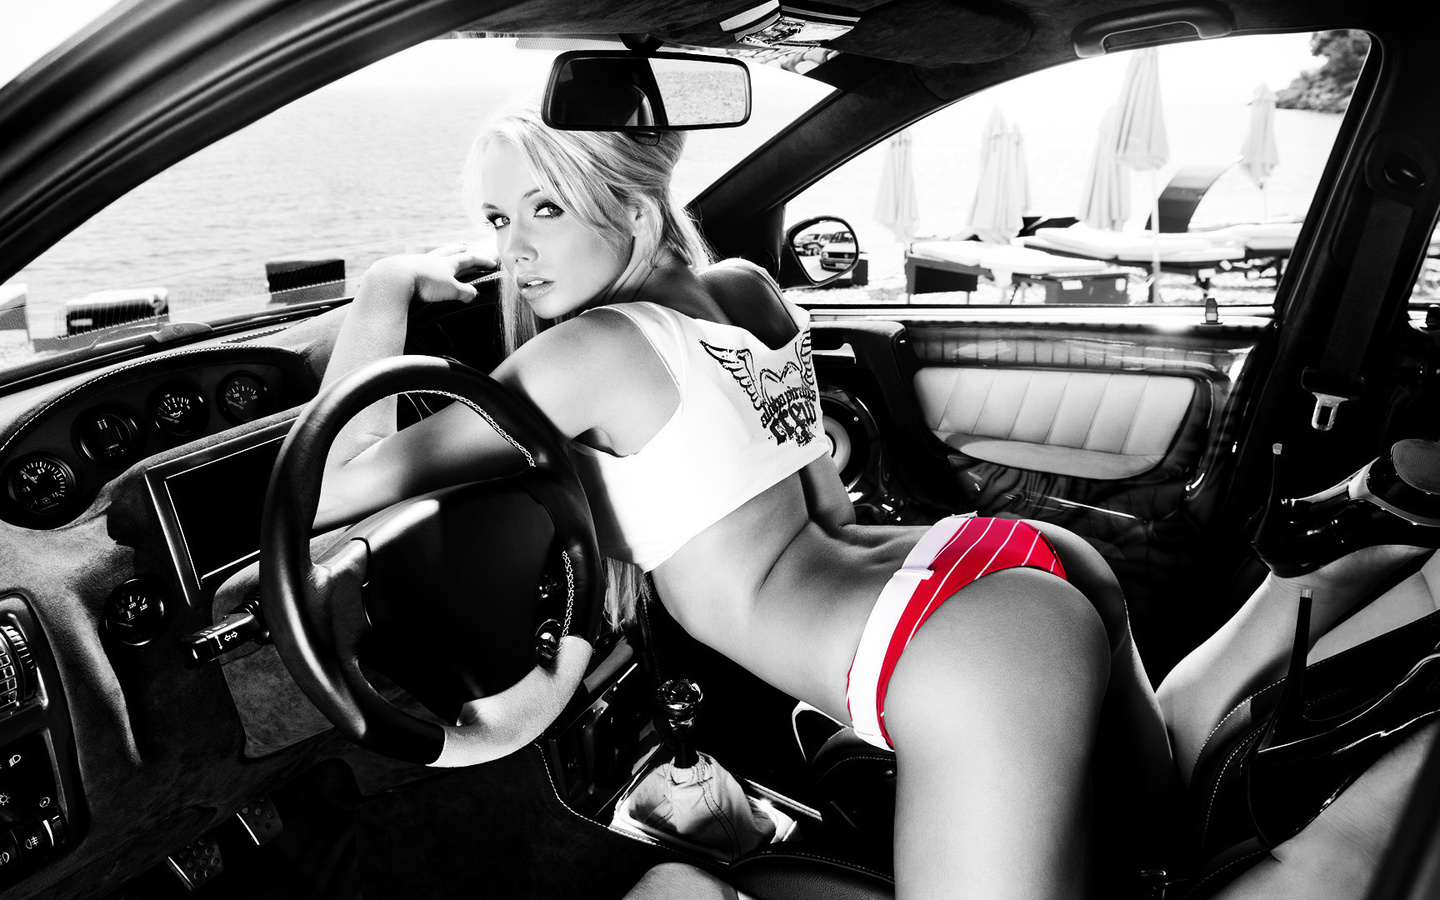 girls-sex-in-the-car-massive-cock-fucking-tight-virgin-pussy